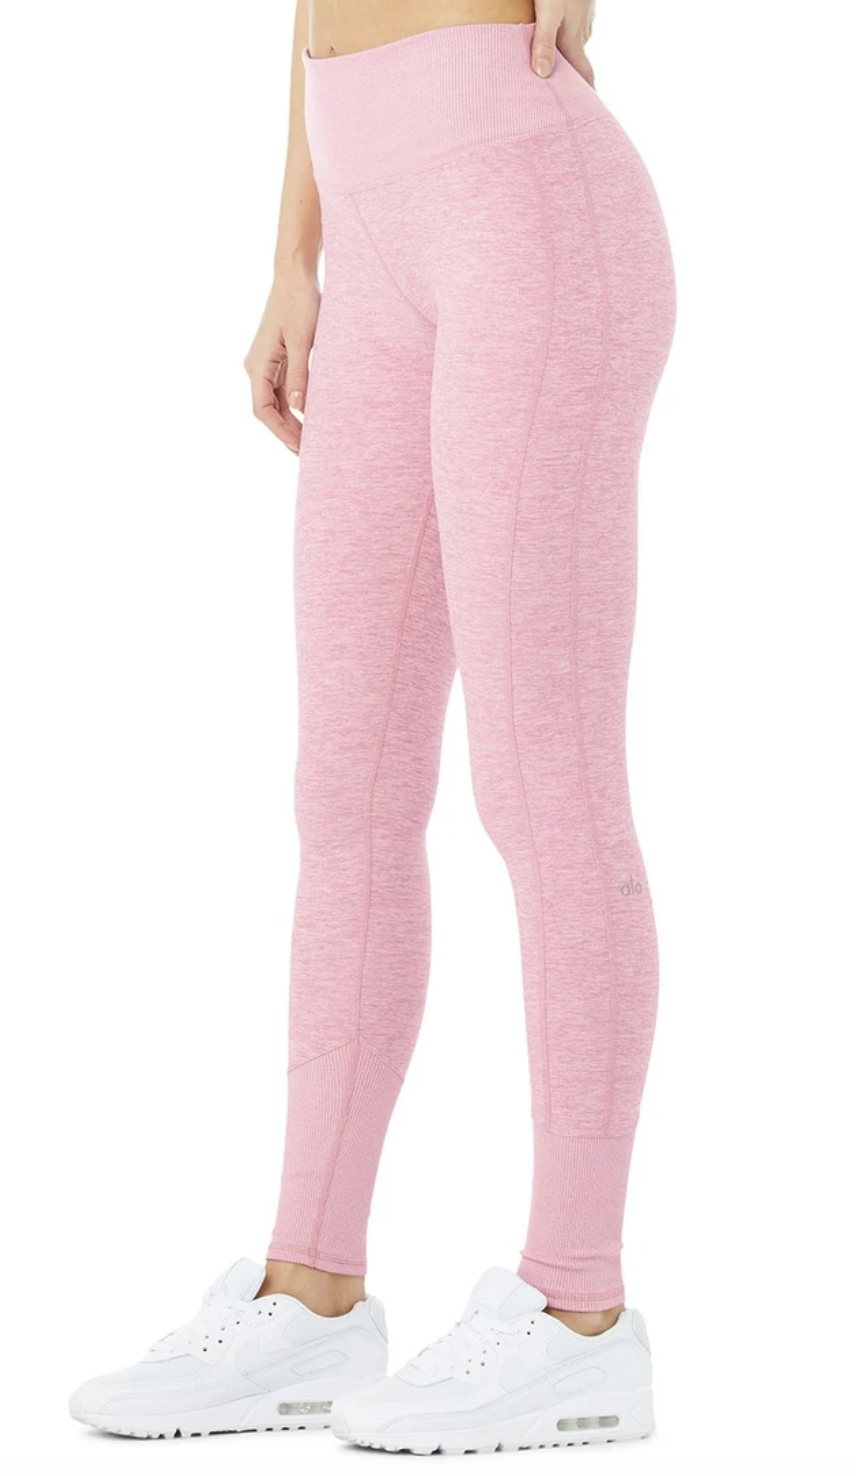 Alosoft High Waist Leggings - as seen on JoJo Fletcher.